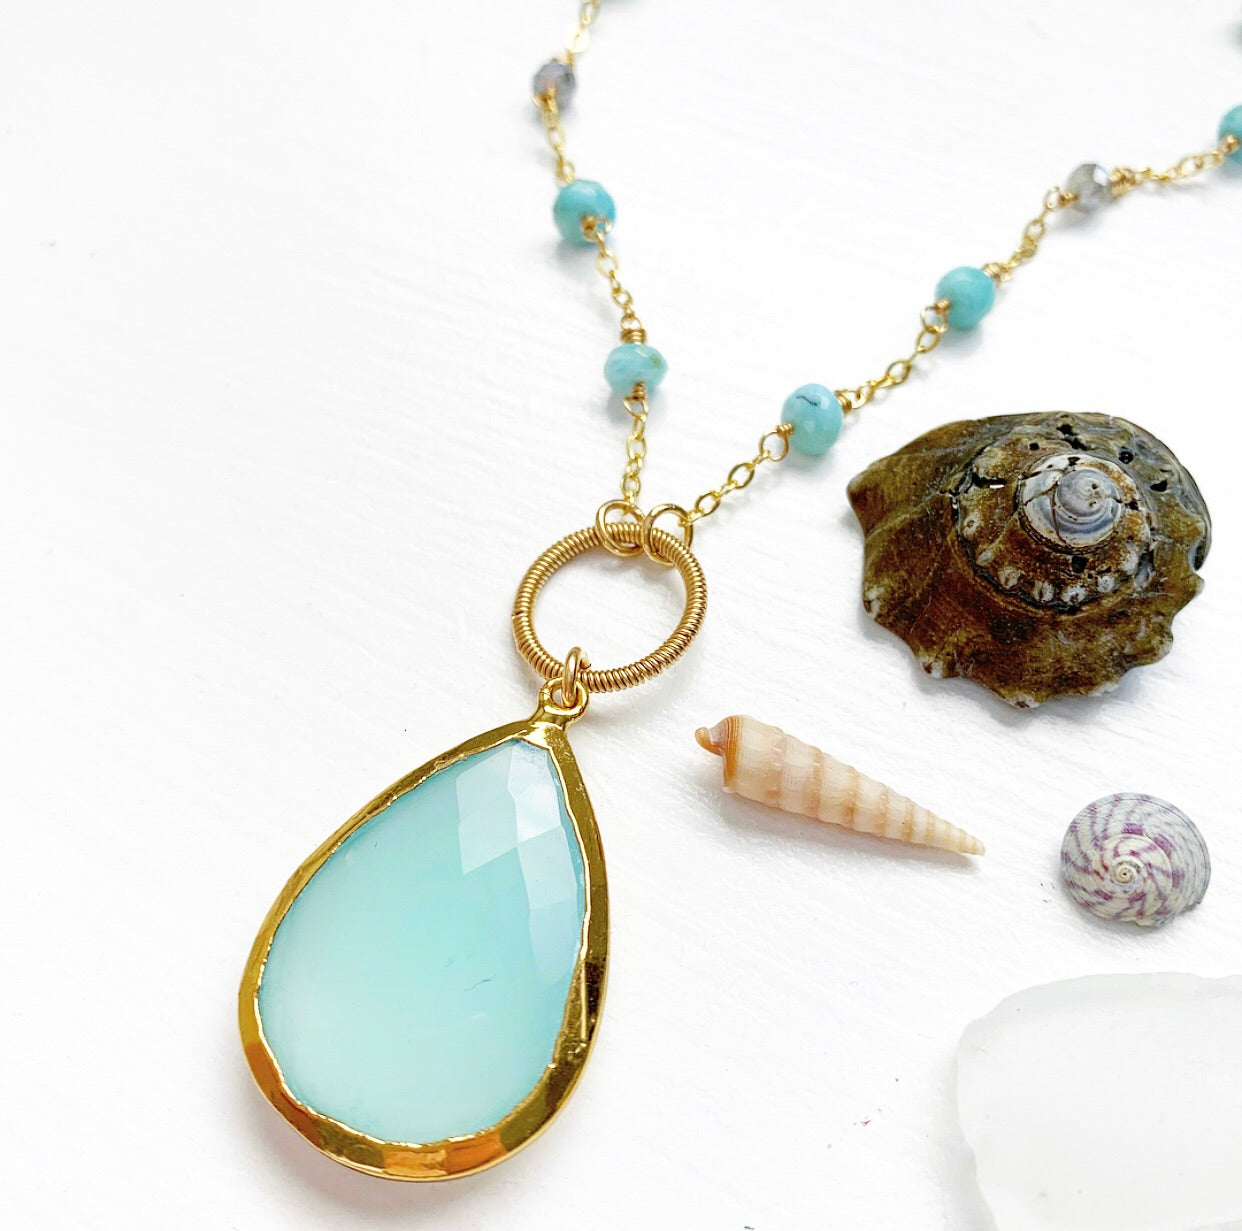 766-One of a Kind Gemstone Necklace